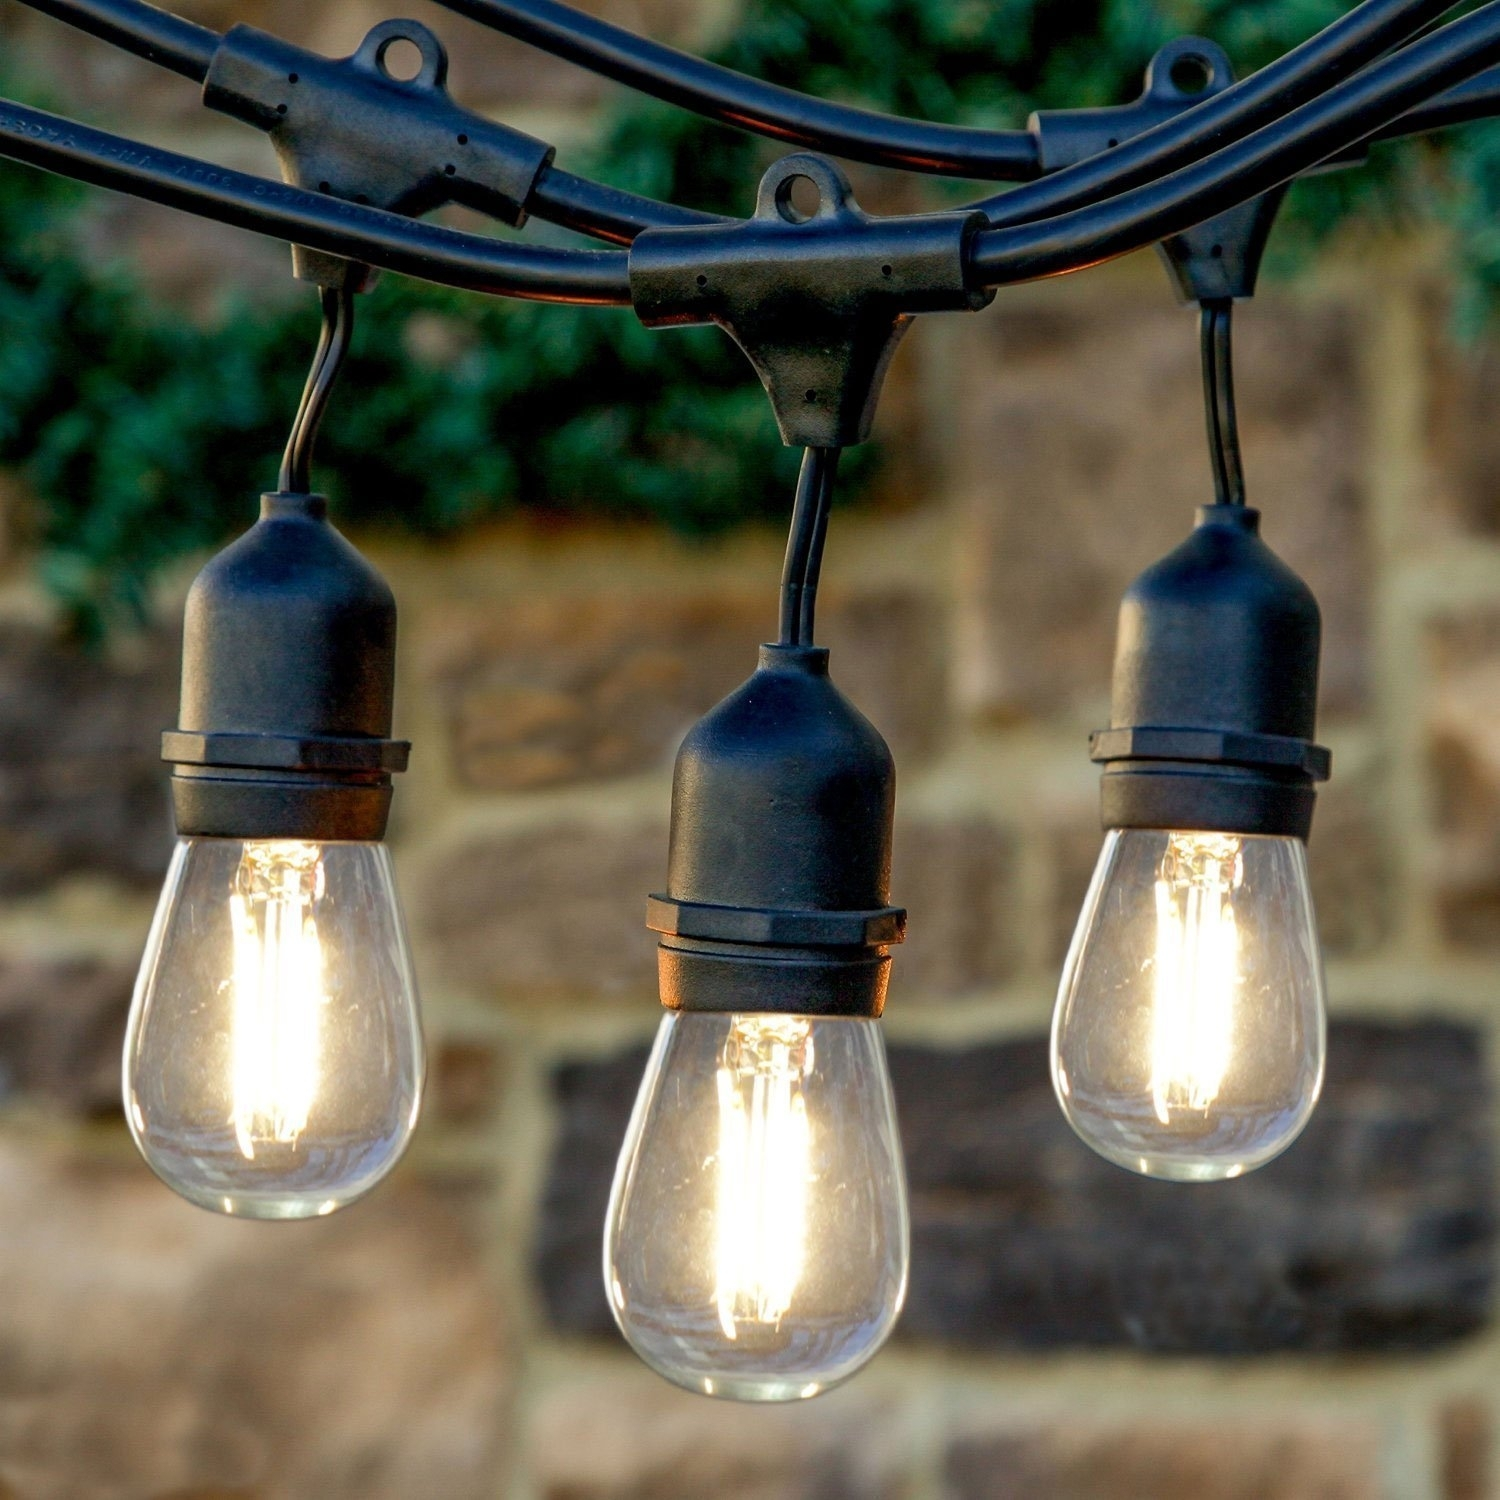 Target Outdoor String Lights Replacement Bulbs: 15 Best Of Hanging Outdoor String Lights At Target